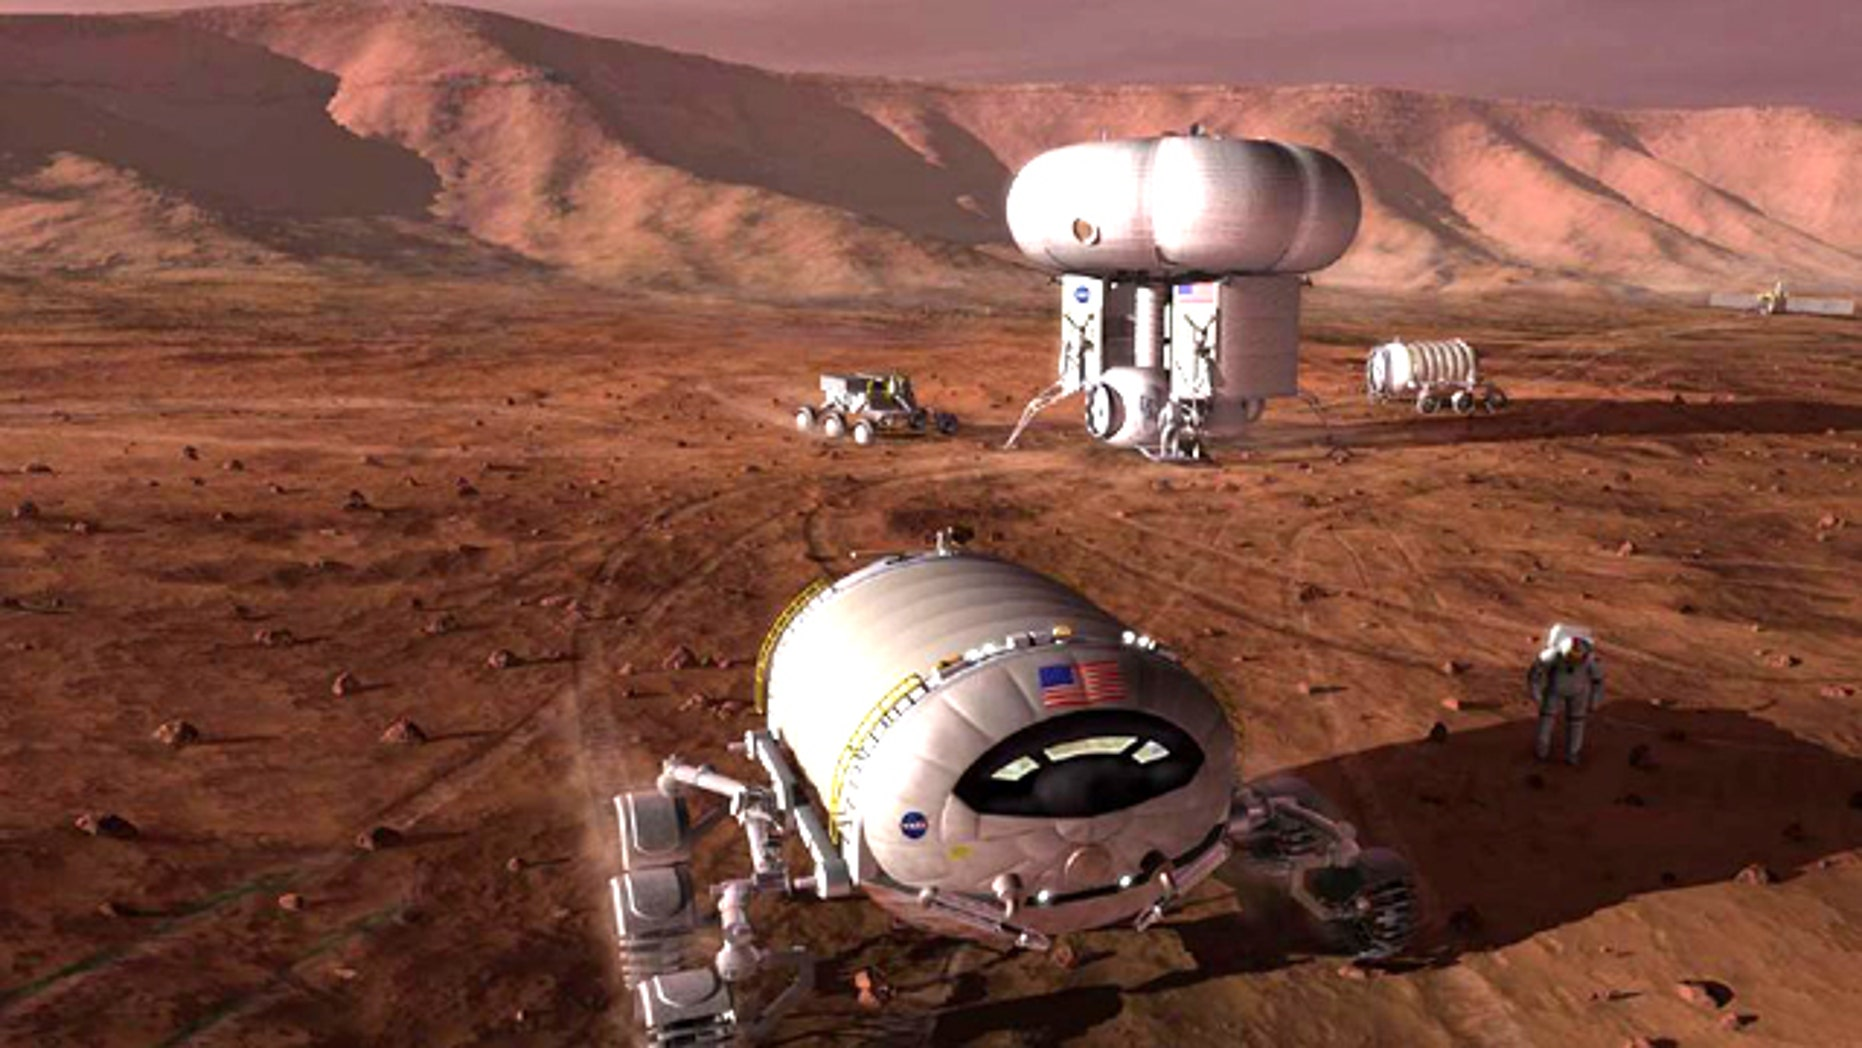 A conceptual illustration depicts what a manned mission to Mars may look like.